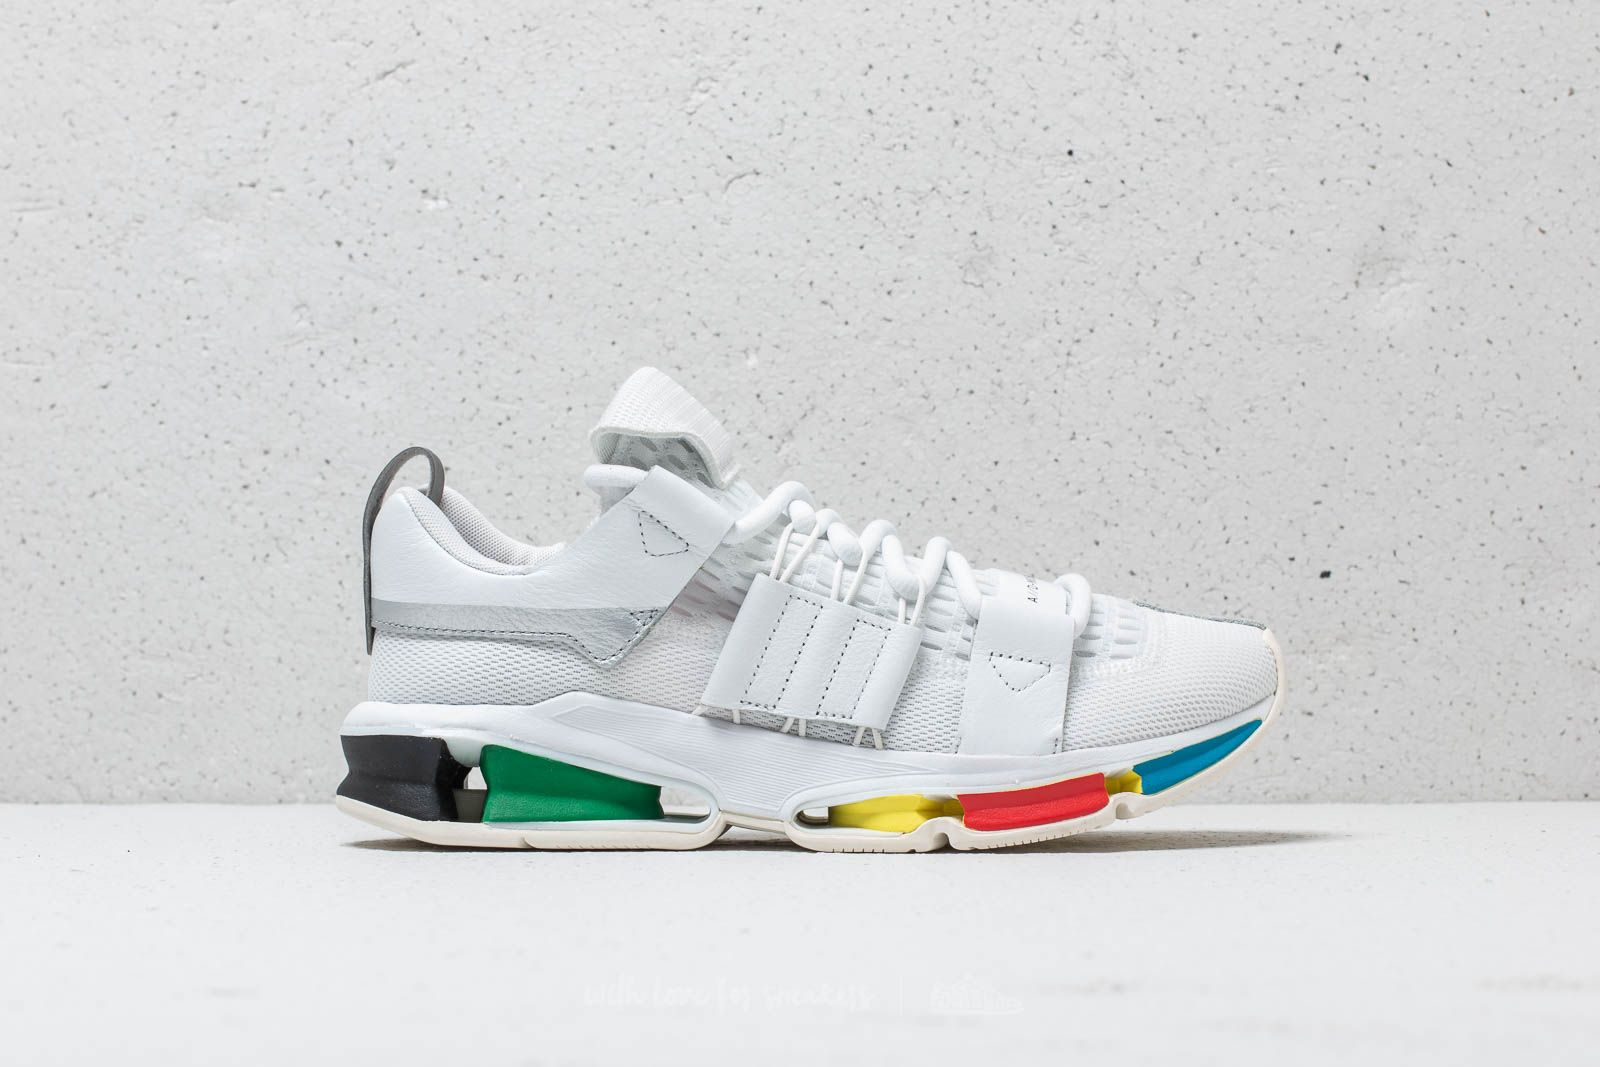 official photos 8d67e f3c67 adidas Statement x Oyster Holdings Twinstrike ADV Cloud White Off White Core  Black a